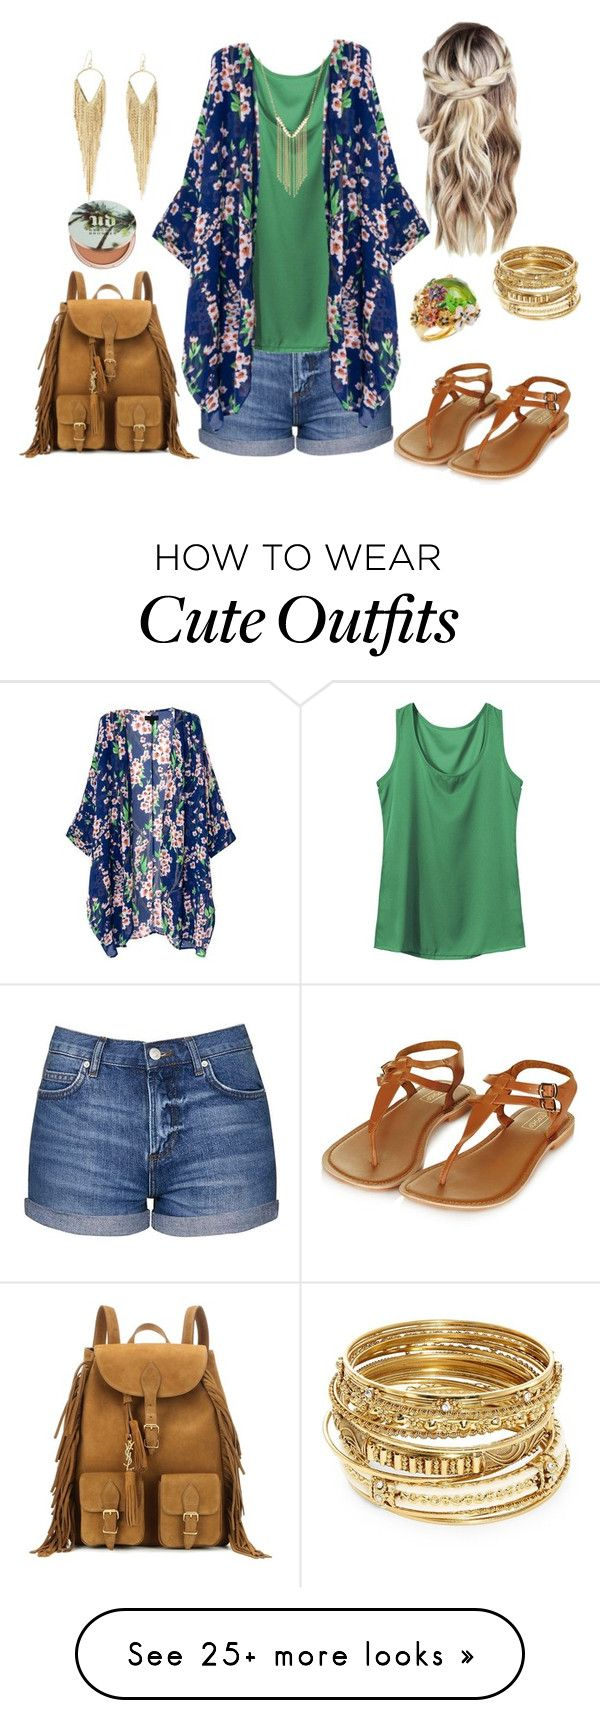 """Cute Outfit!"" by jamielojordan on Polyvore featuring Topshop, ABS by Allen Schwartz, Gemelli, Kenneth Jay Lane, Jules Smith, Yves Saint Laurent and Urban Decay"